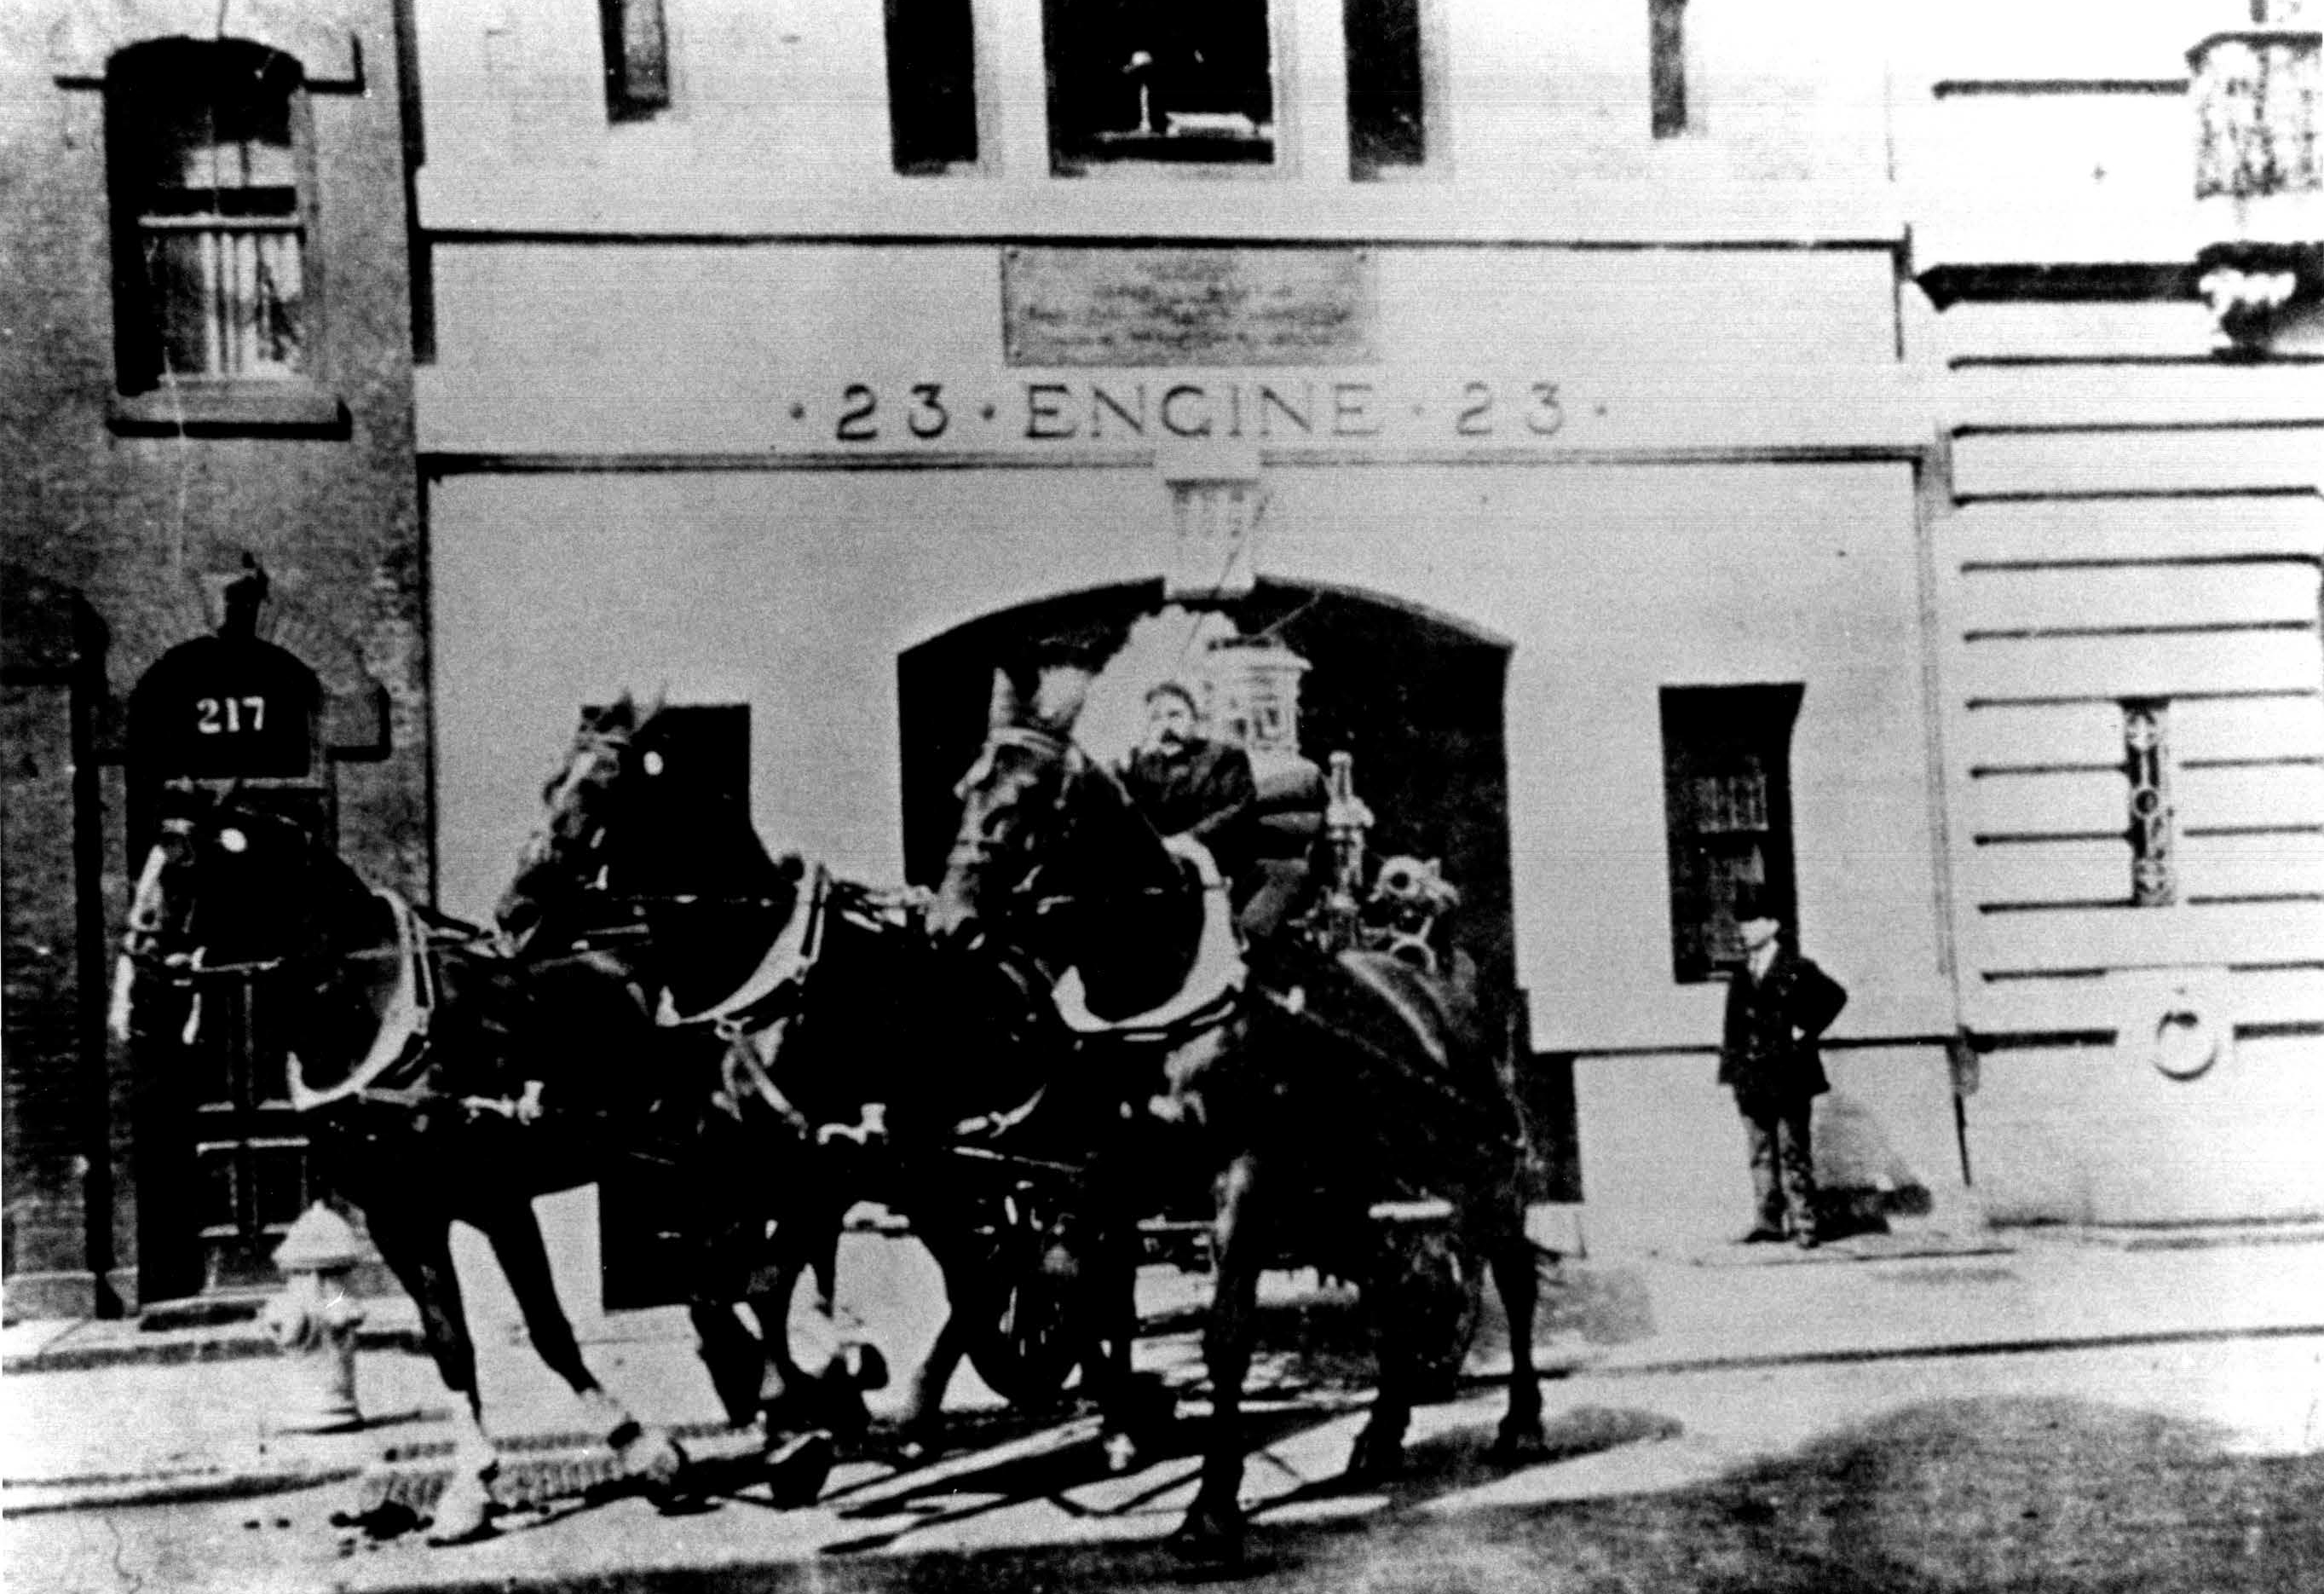 Horse-drawn fire-fighting apparatus at Engine Company No. 23 in 1907. Photo via LPC.